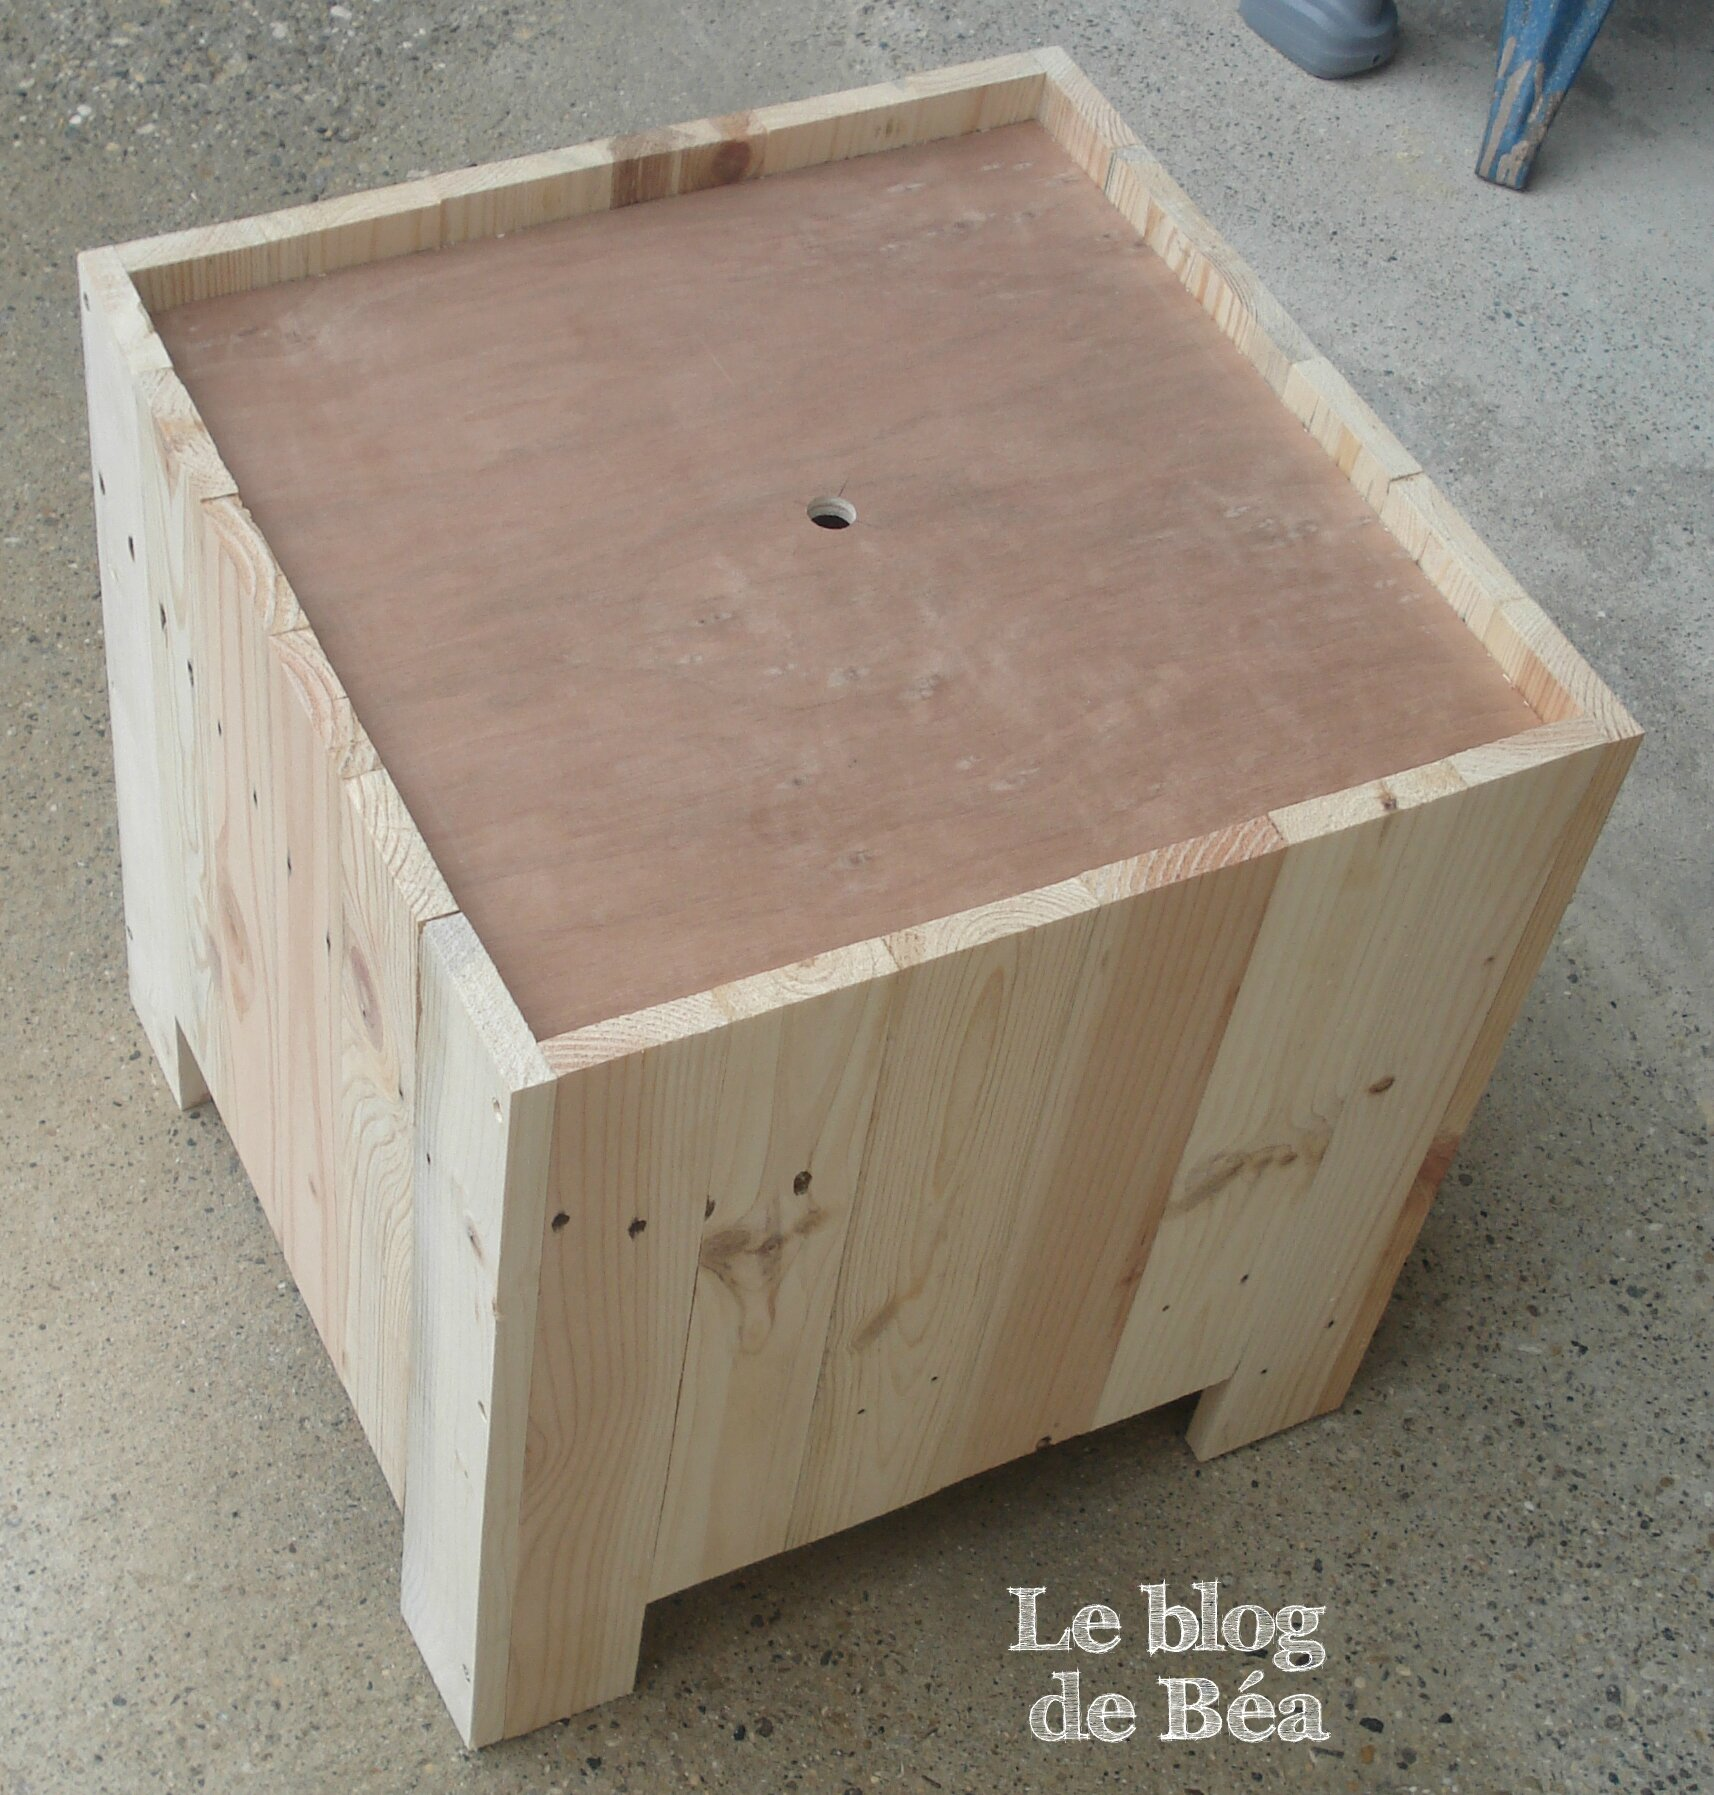 Diy tabouret rangement en bois de palette photo de 1 - Comment faire une table de chevet ...